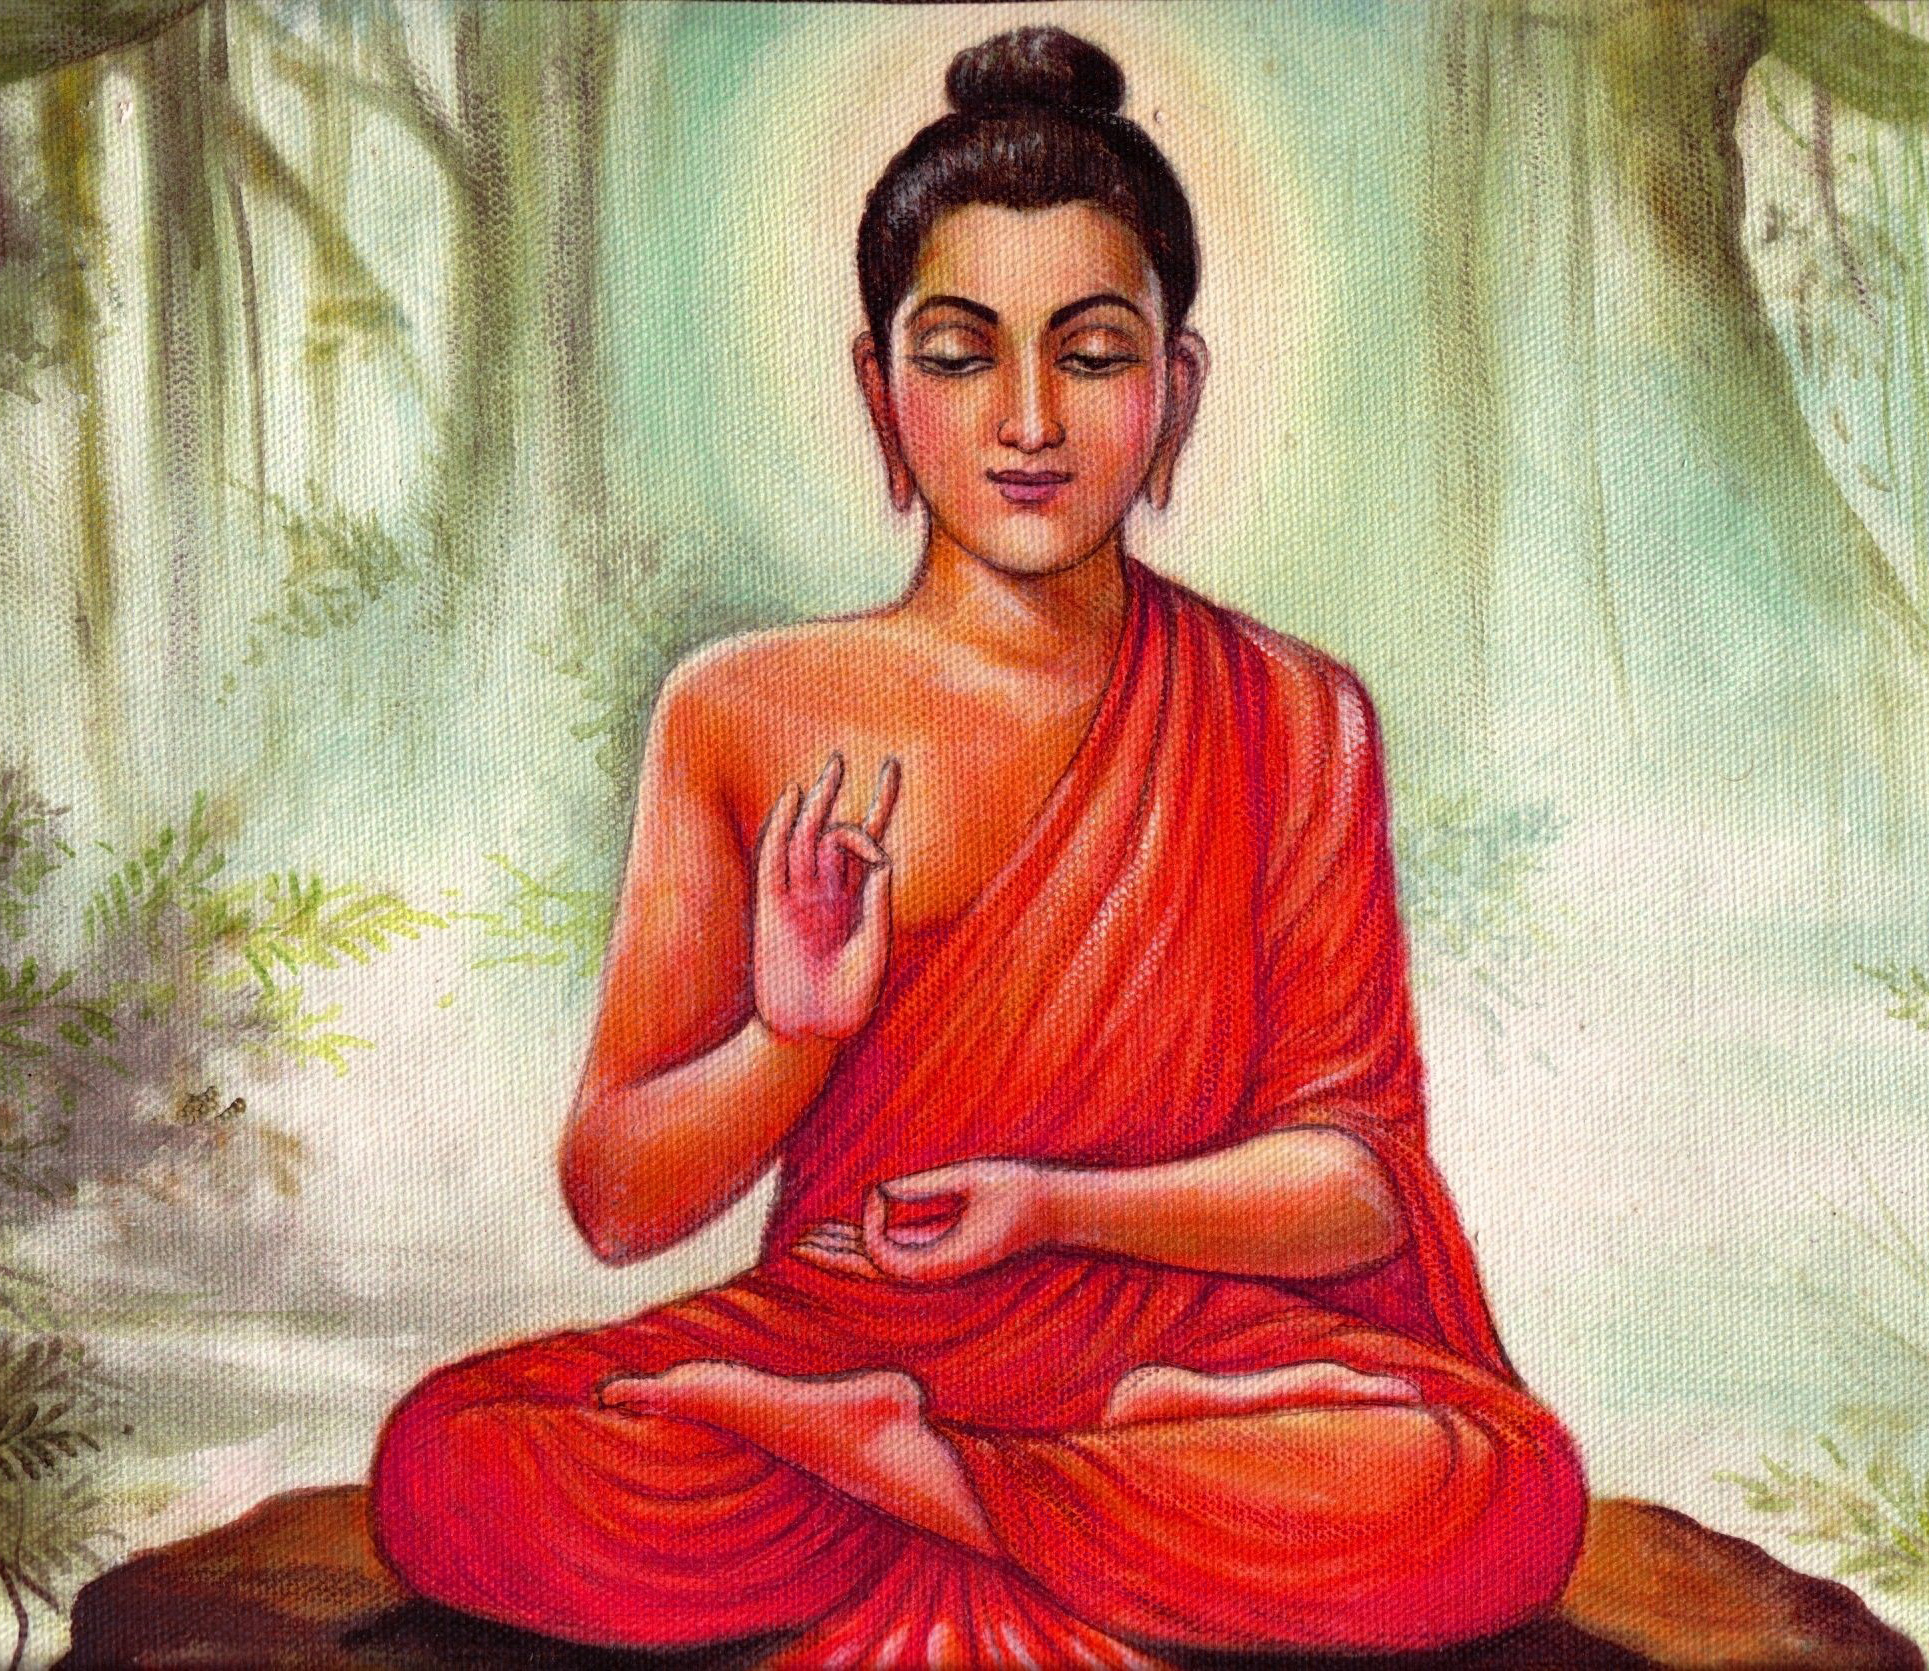 Gautama Buddha images Wallpaper Pictures Photo HD Download